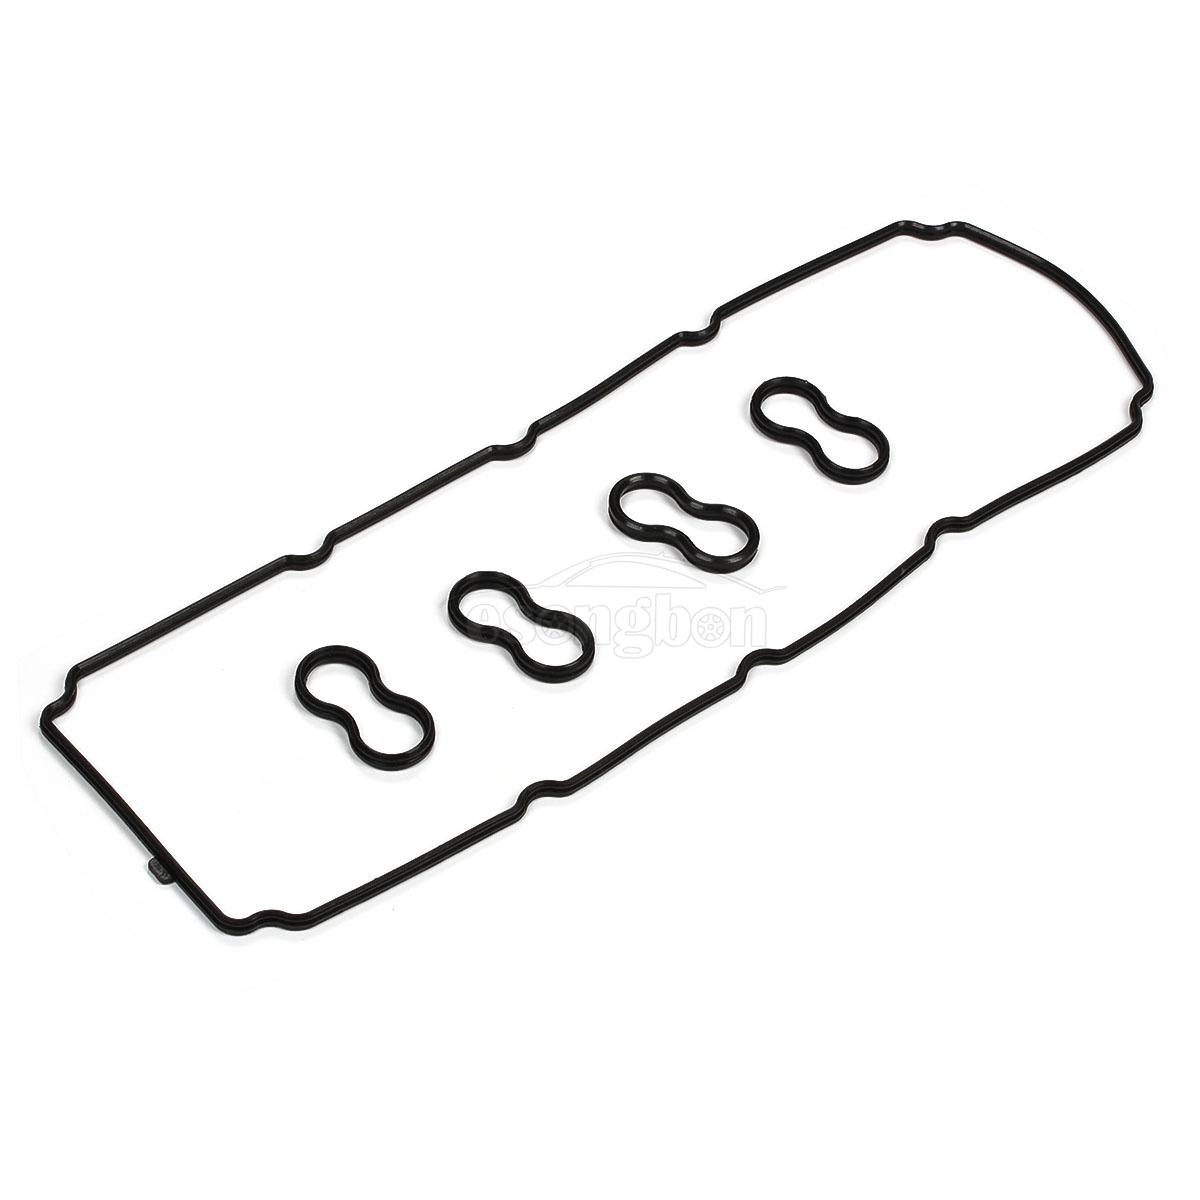 For Chrysler For Dodge For Jeep 03 14 Valve Cover Gaskets